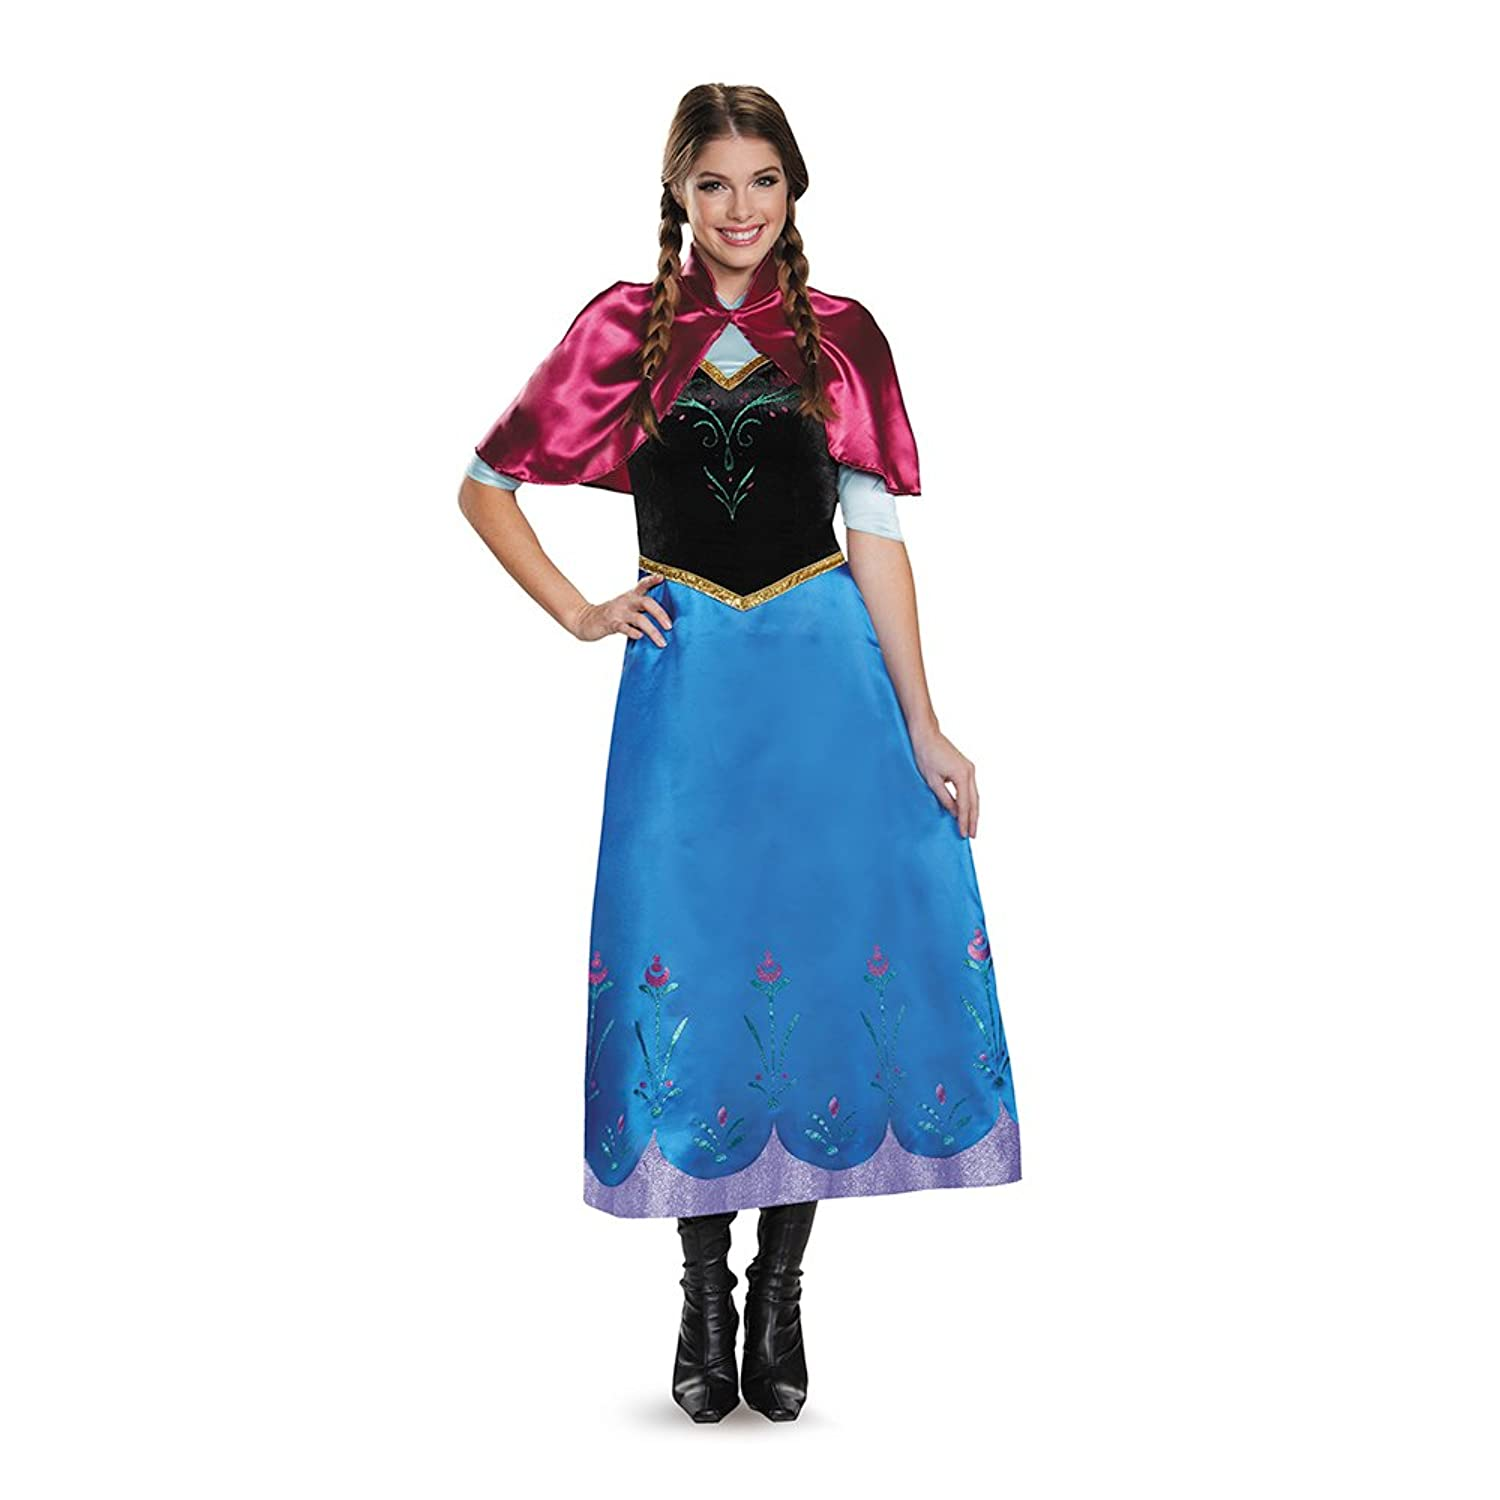 Amazon.com Disguise Womenu0027s Frozen Anna Traveling Deluxe Costume Clothing  sc 1 st  Amazon.com & Amazon.com: Disguise Womenu0027s Frozen Anna Traveling Deluxe Costume ...